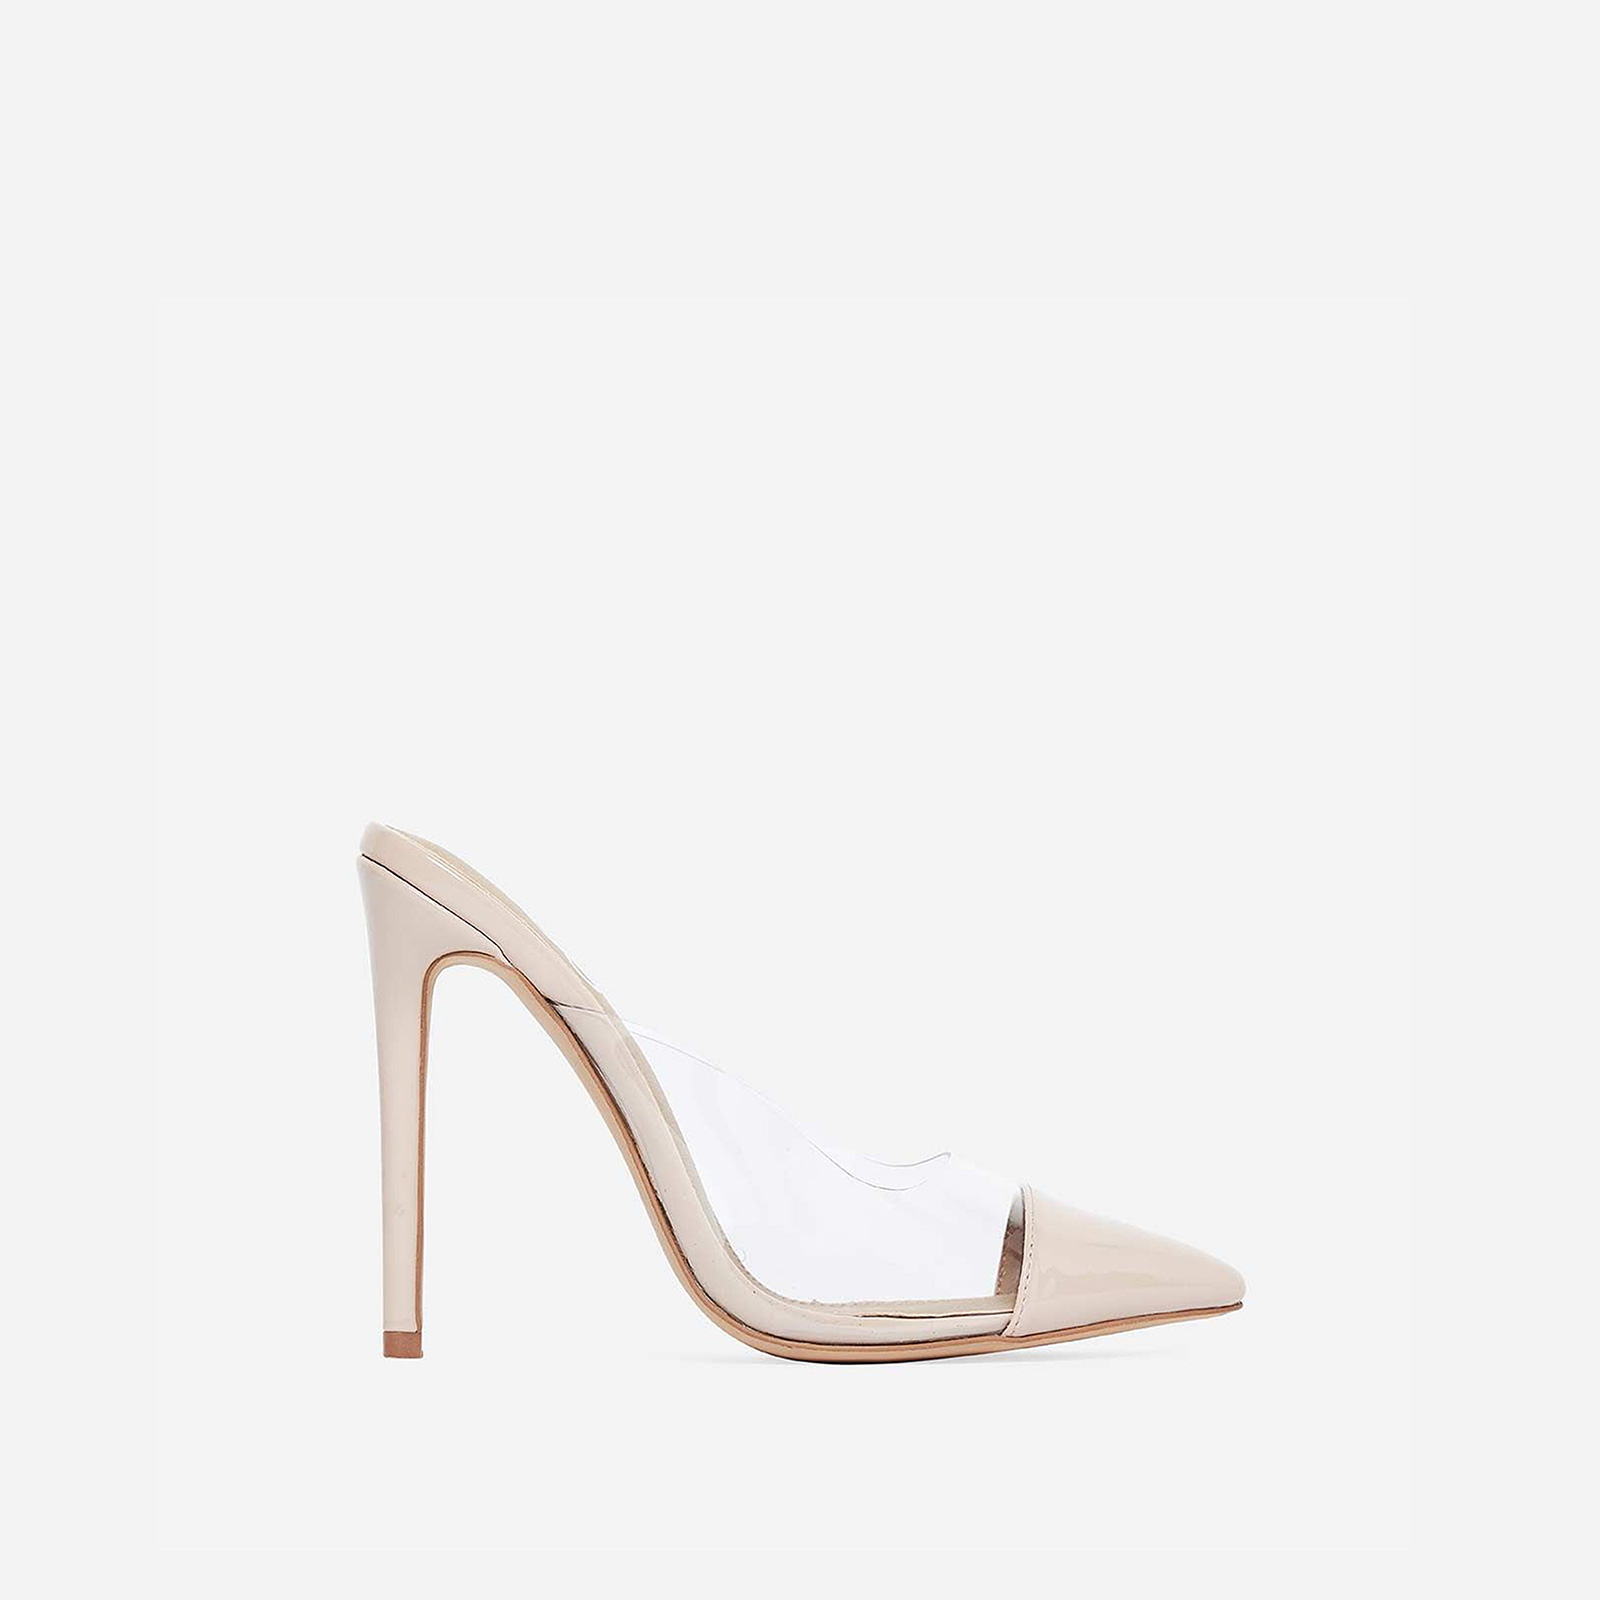 Korra Closed Pointed Toe Perspex Mule In Nude Patent